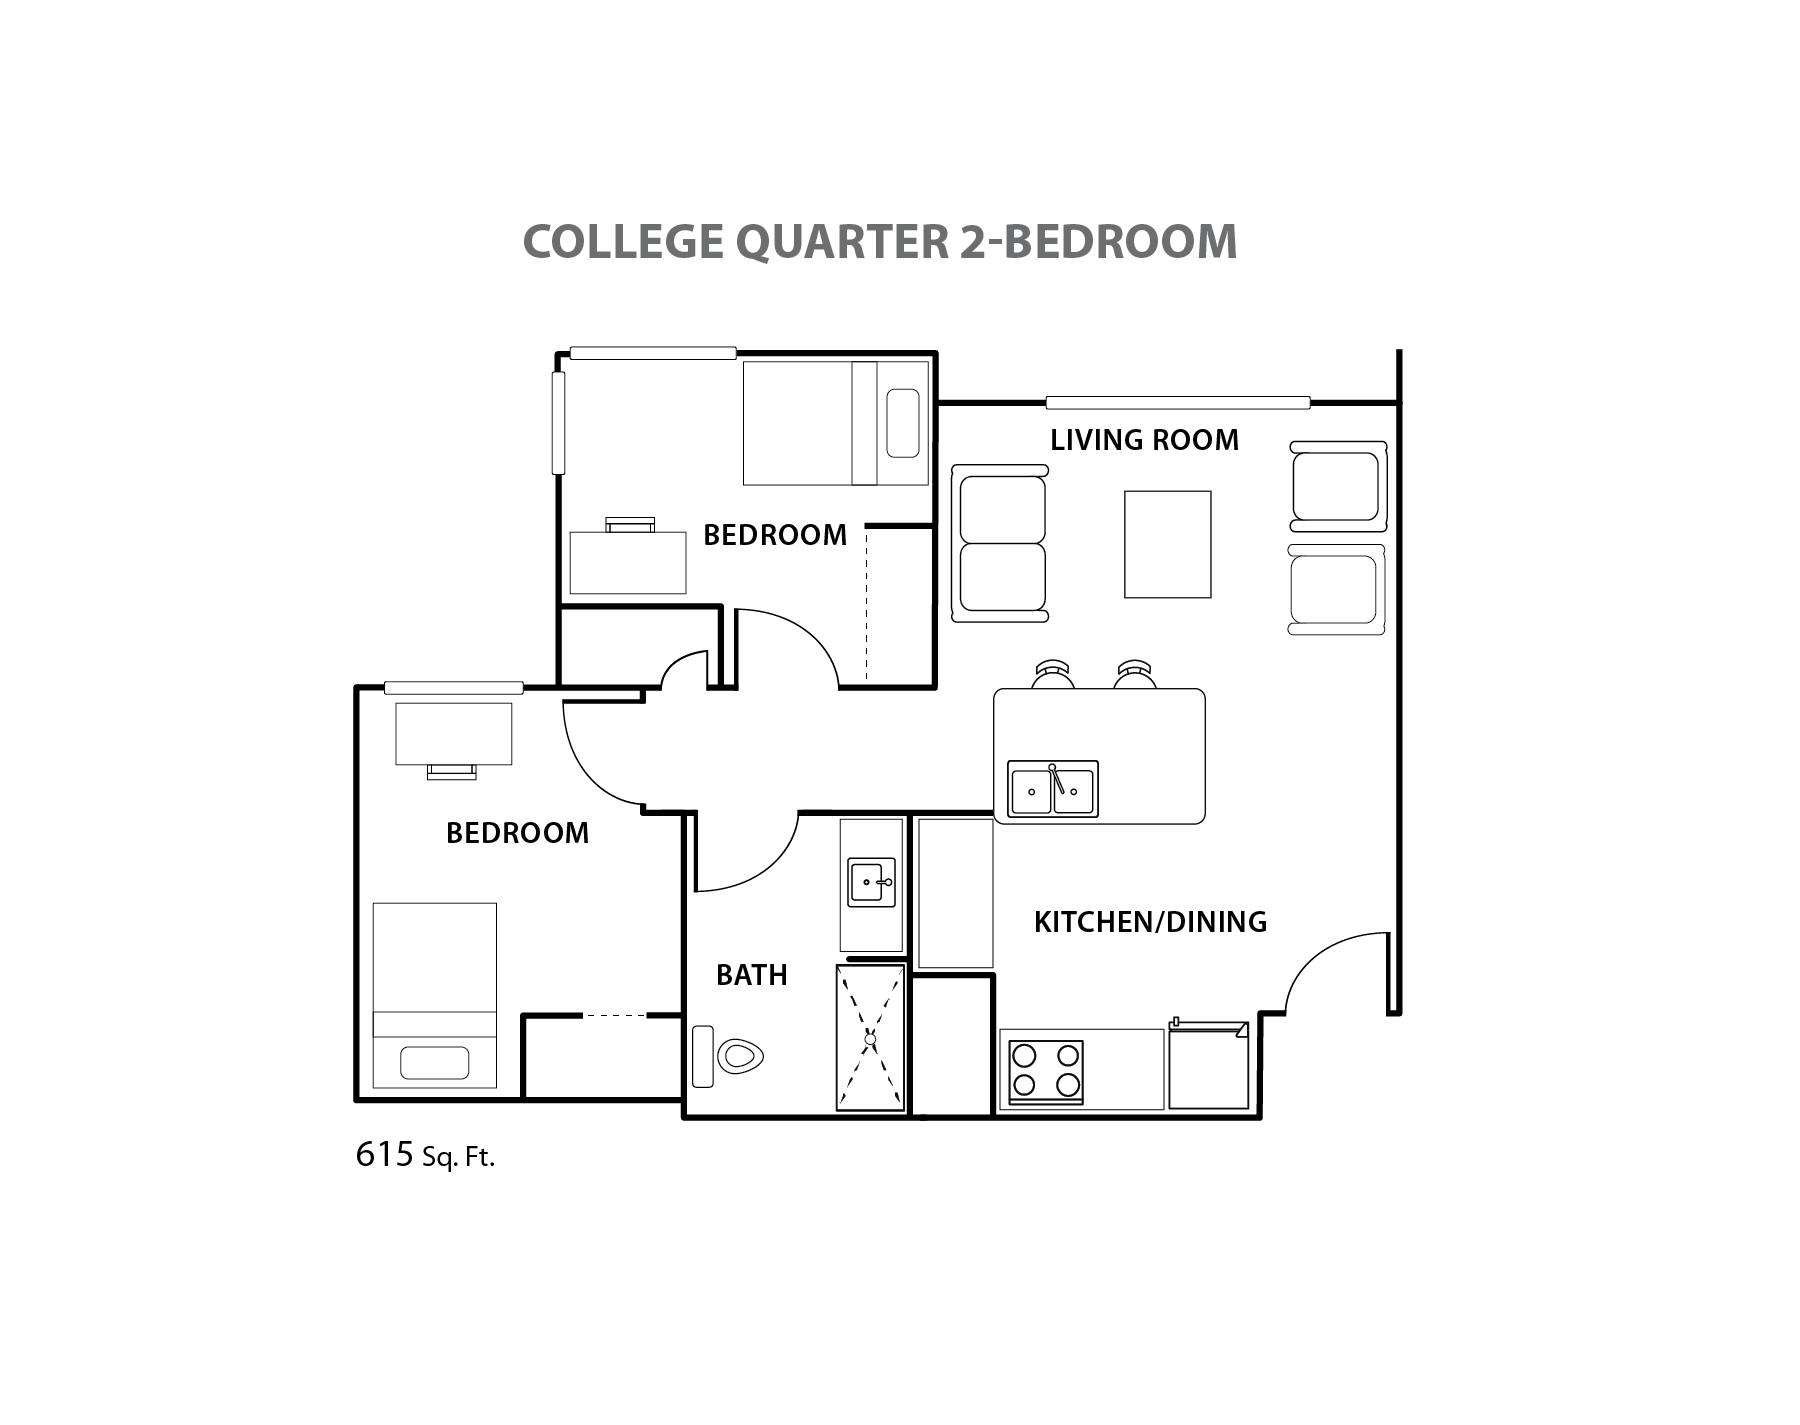 Cq two bedroom